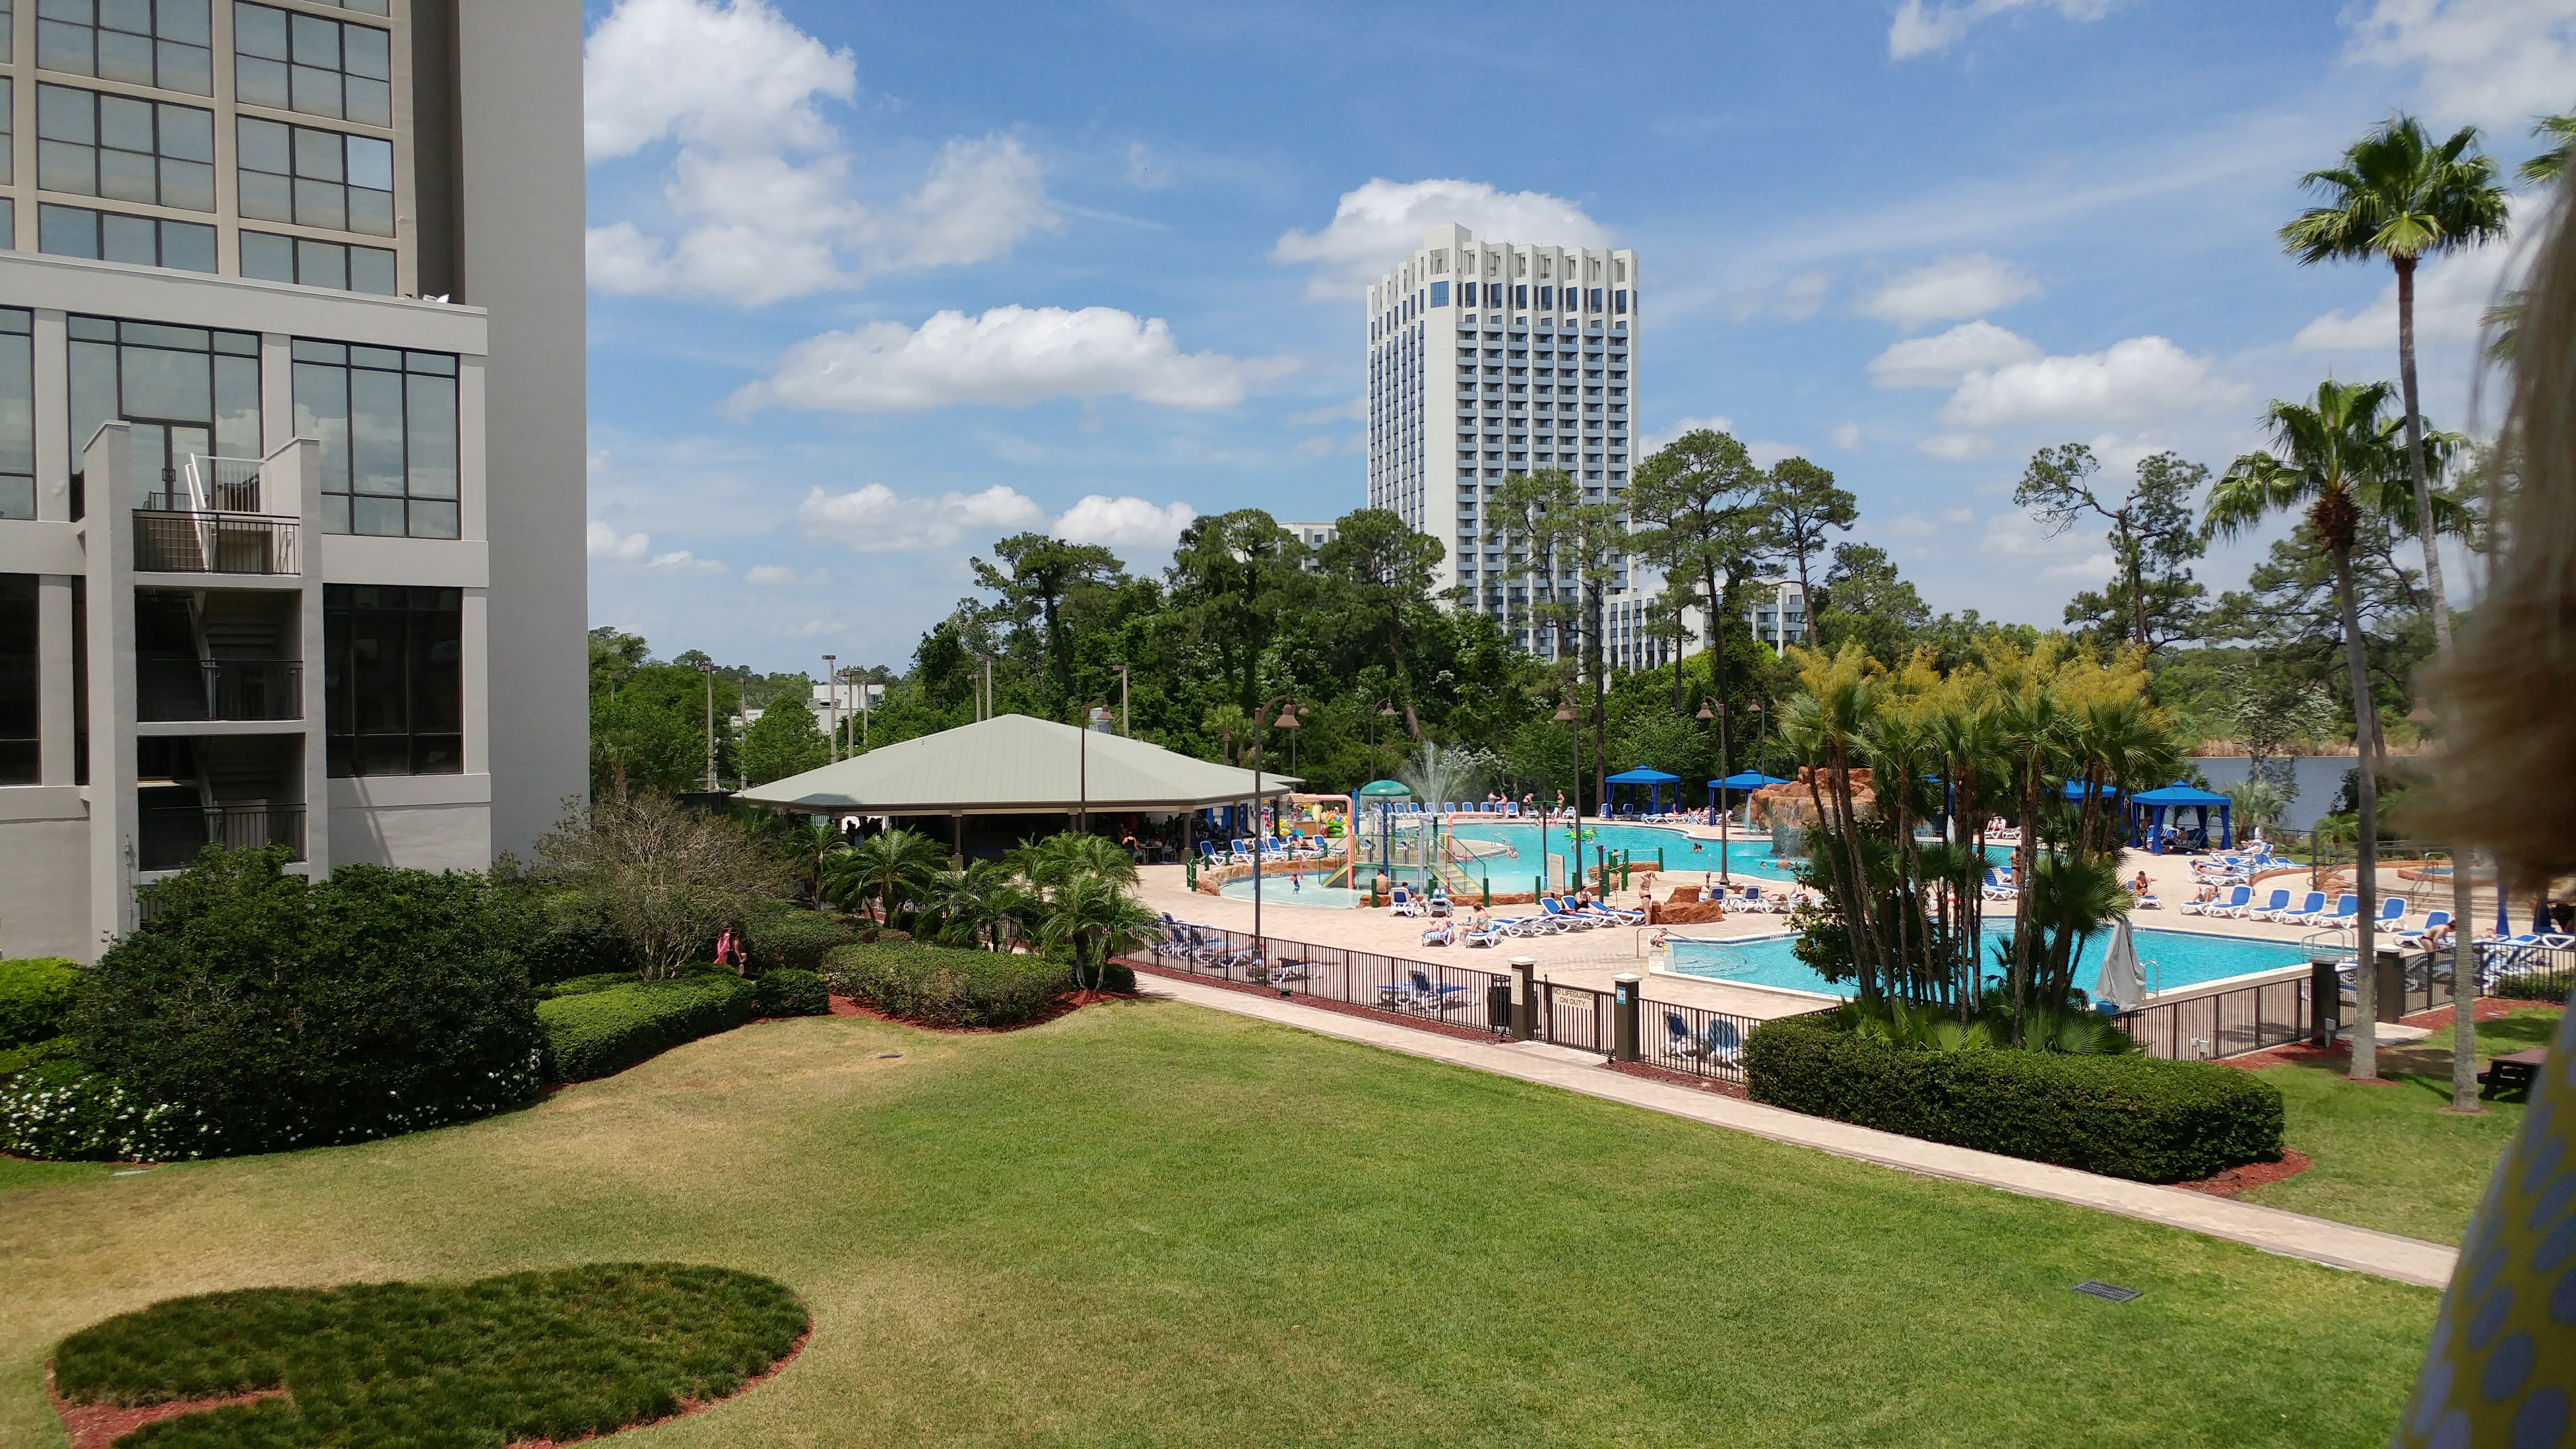 Considering the wyndham lake buena vista for your next for The wyndham